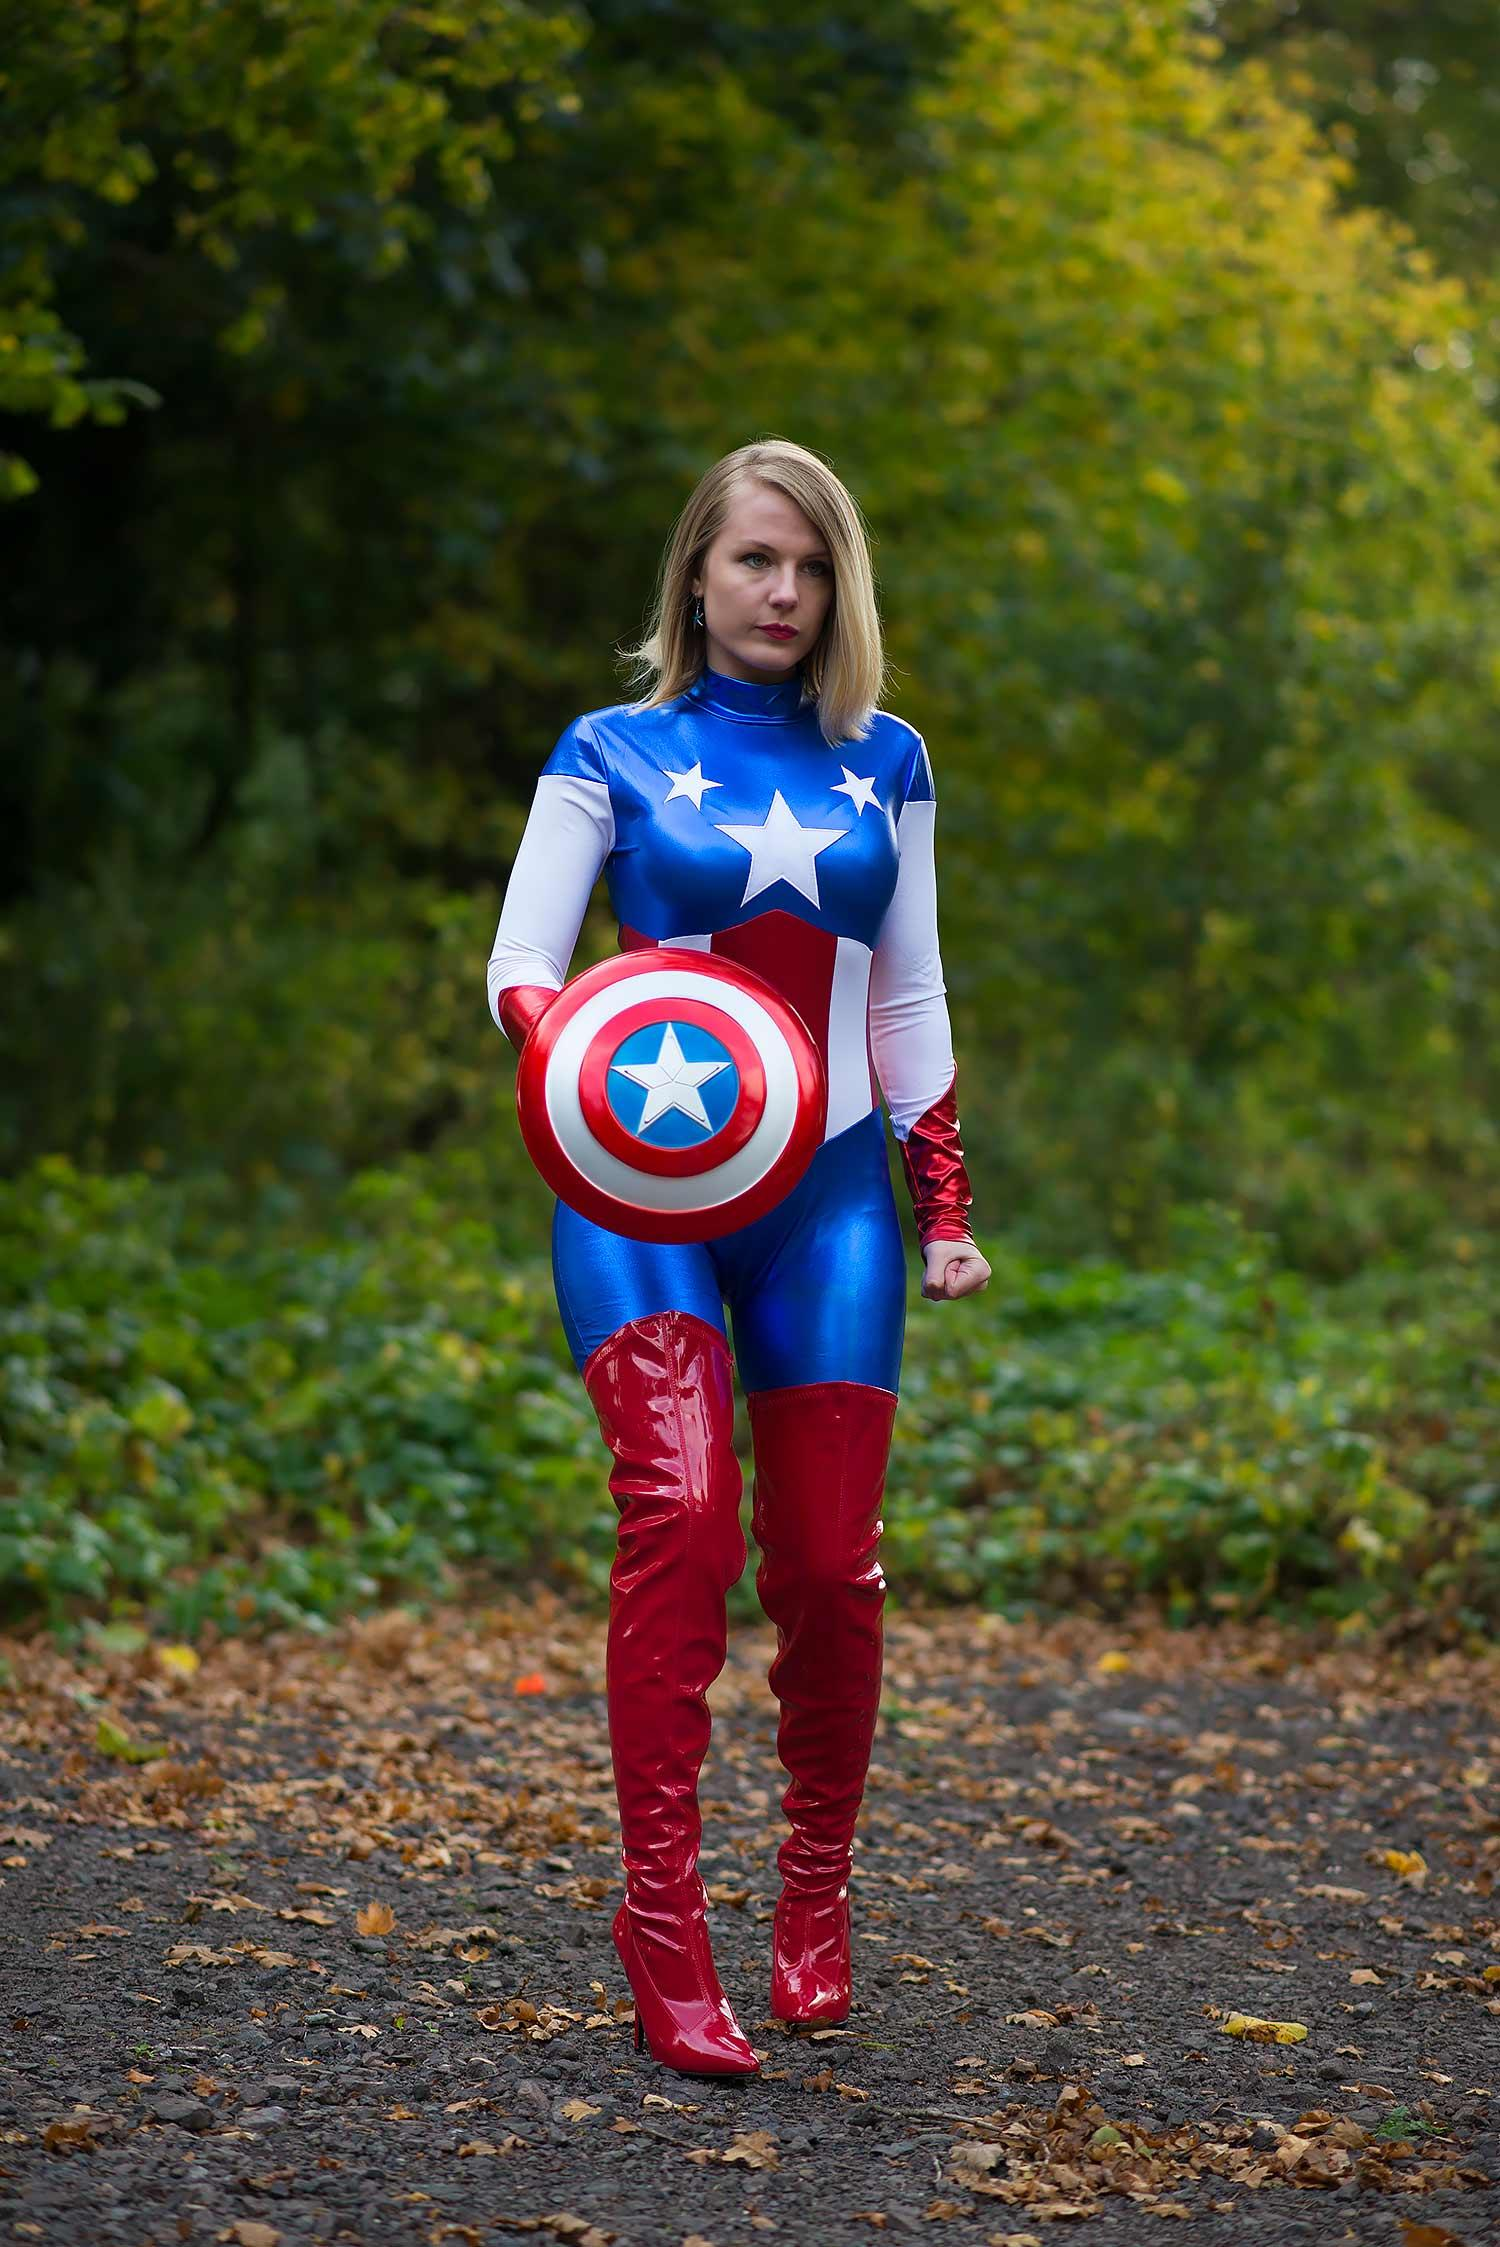 lorna-burford-miss-captain-america-costume-girl-2